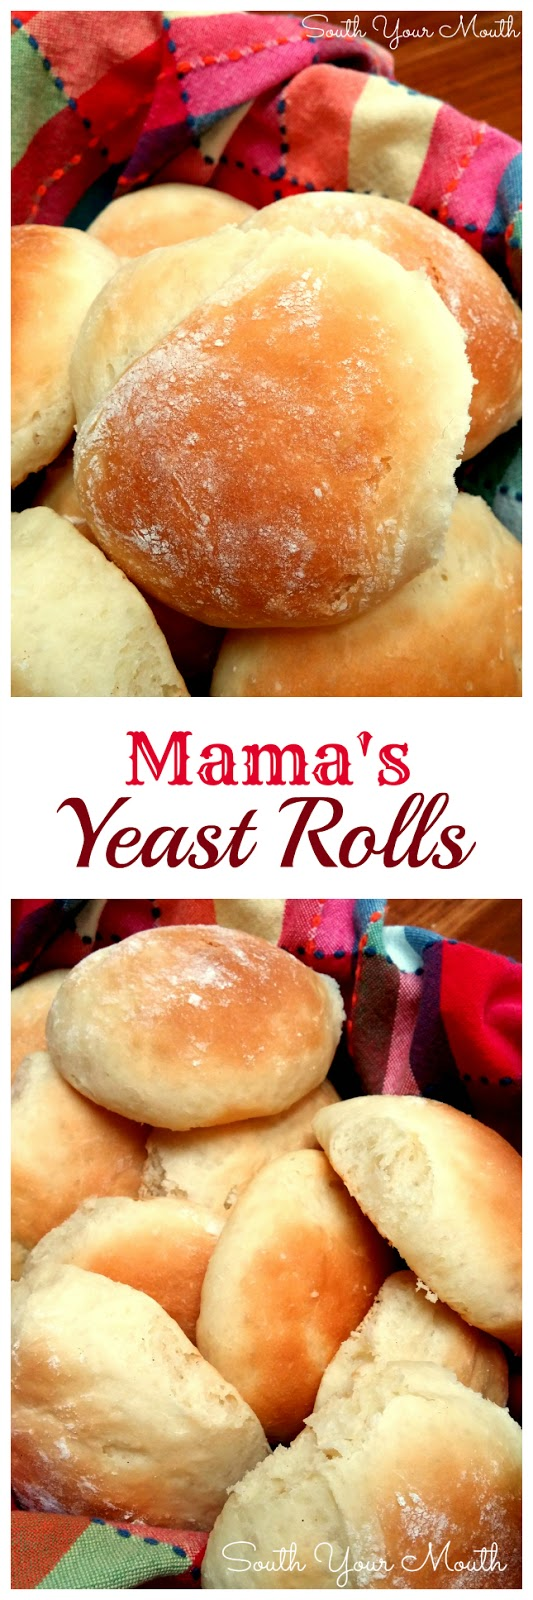 South Your Mouth: Mama's Yeast Rolls